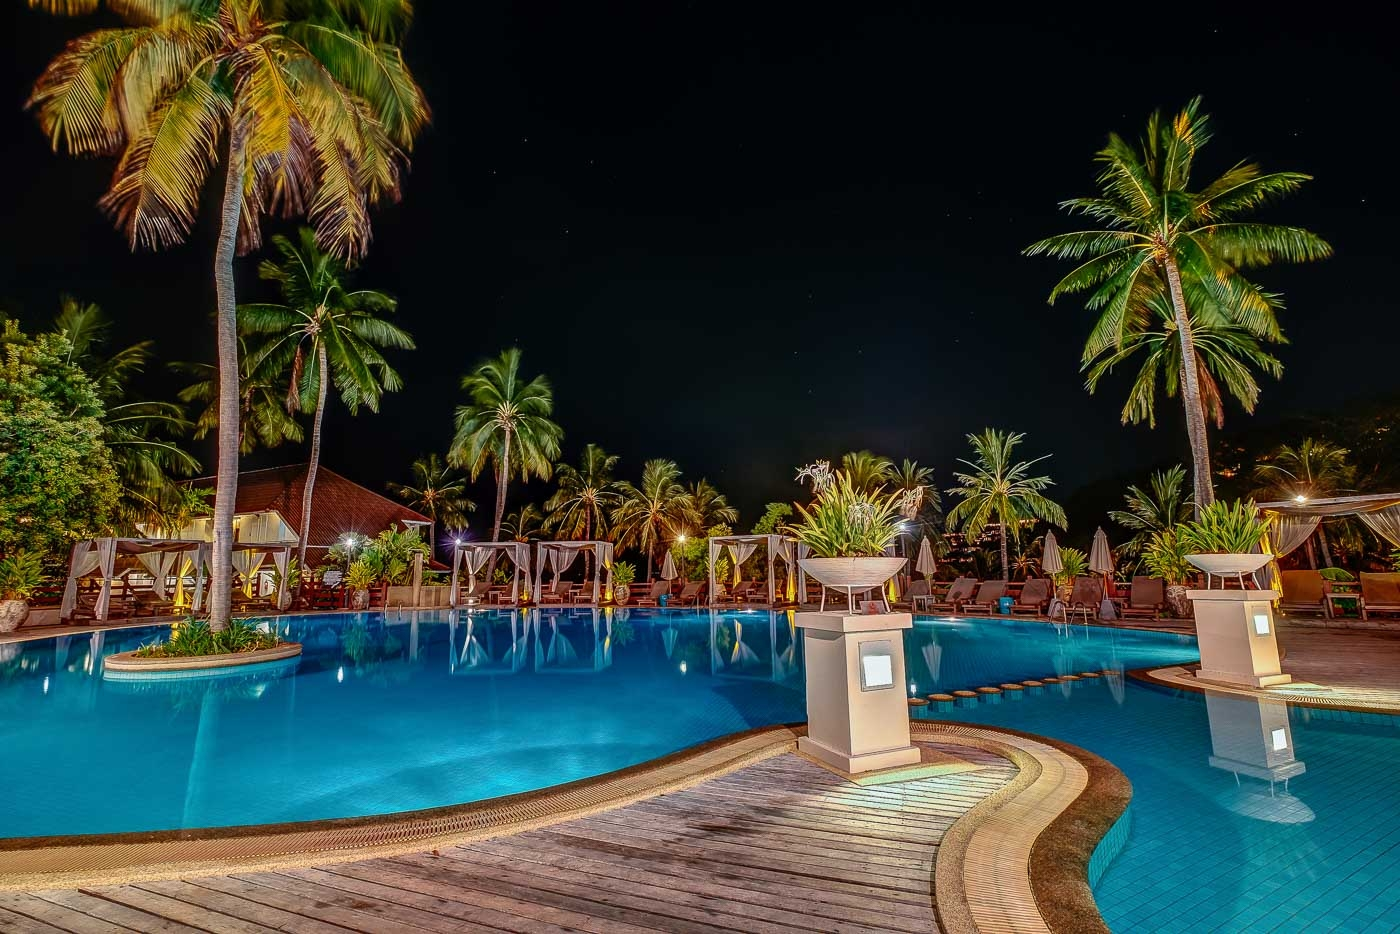 A mixed selection of images from a recent shoot at Cape Panwa Hotel Phuket in the South of Thailand. For a full portfolio visit my interior photography gallery.